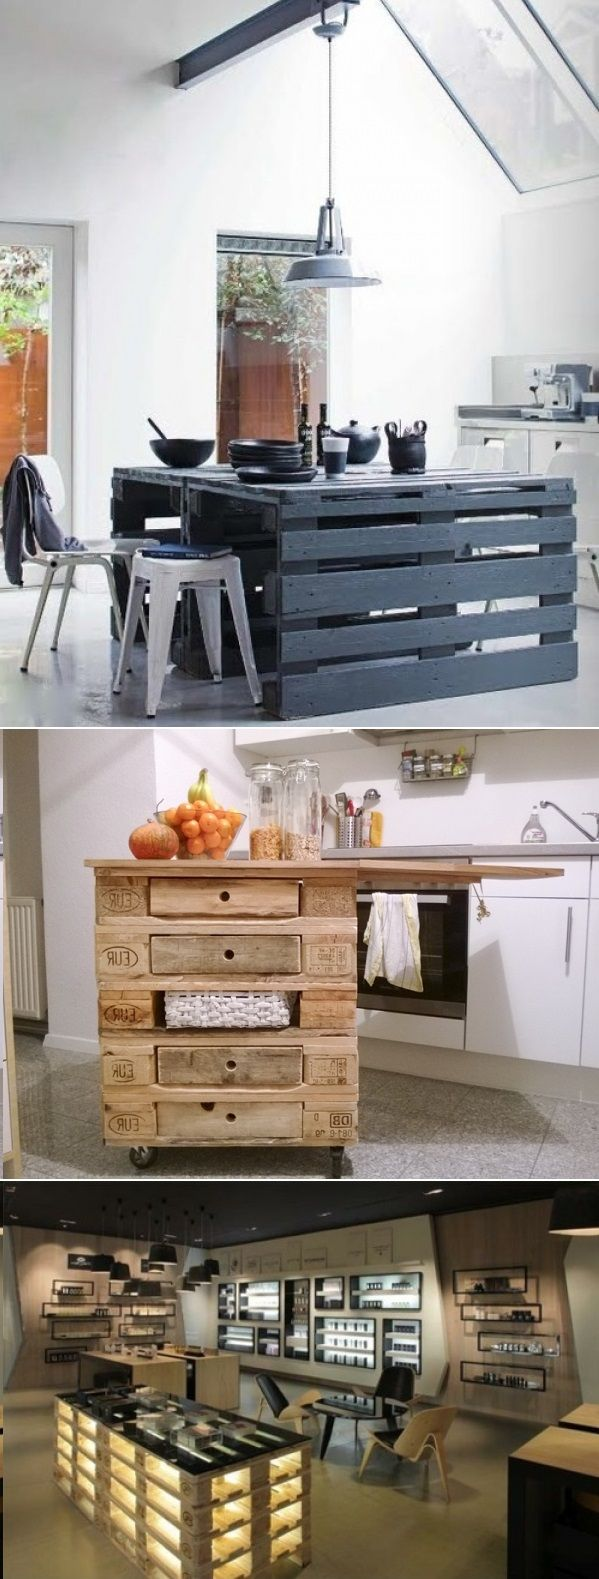 Kücheninsel aus #Paletten #DIY #Kücke #Kitchen Island Of #Pallets ...